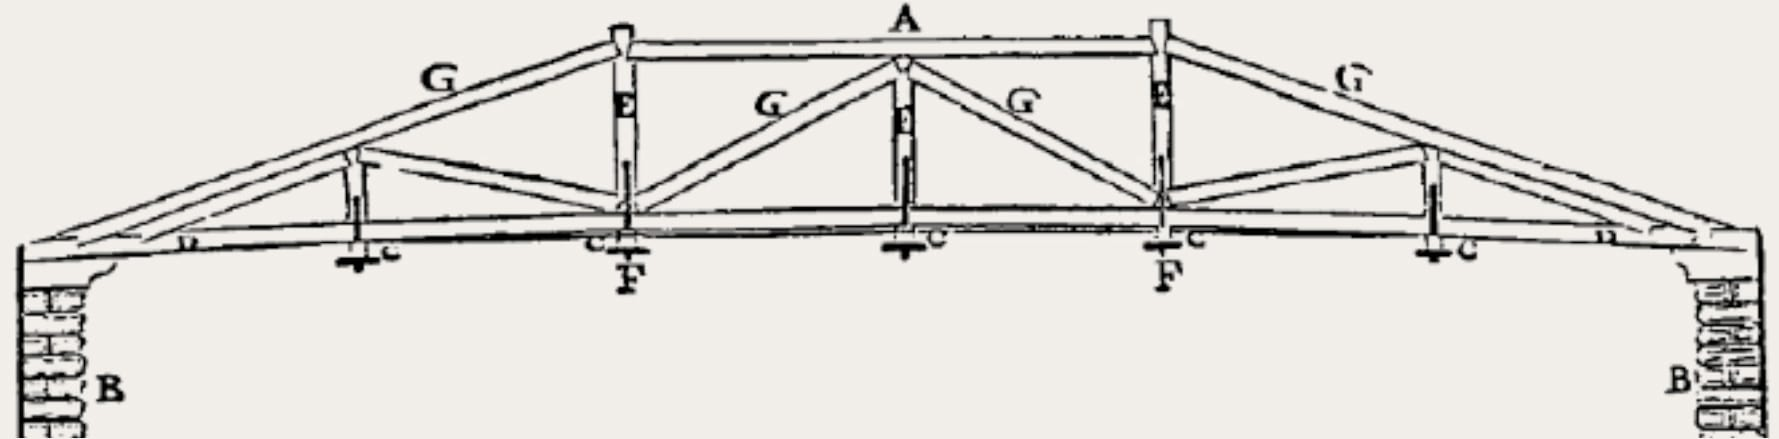 Chapter 2 - Truss Book